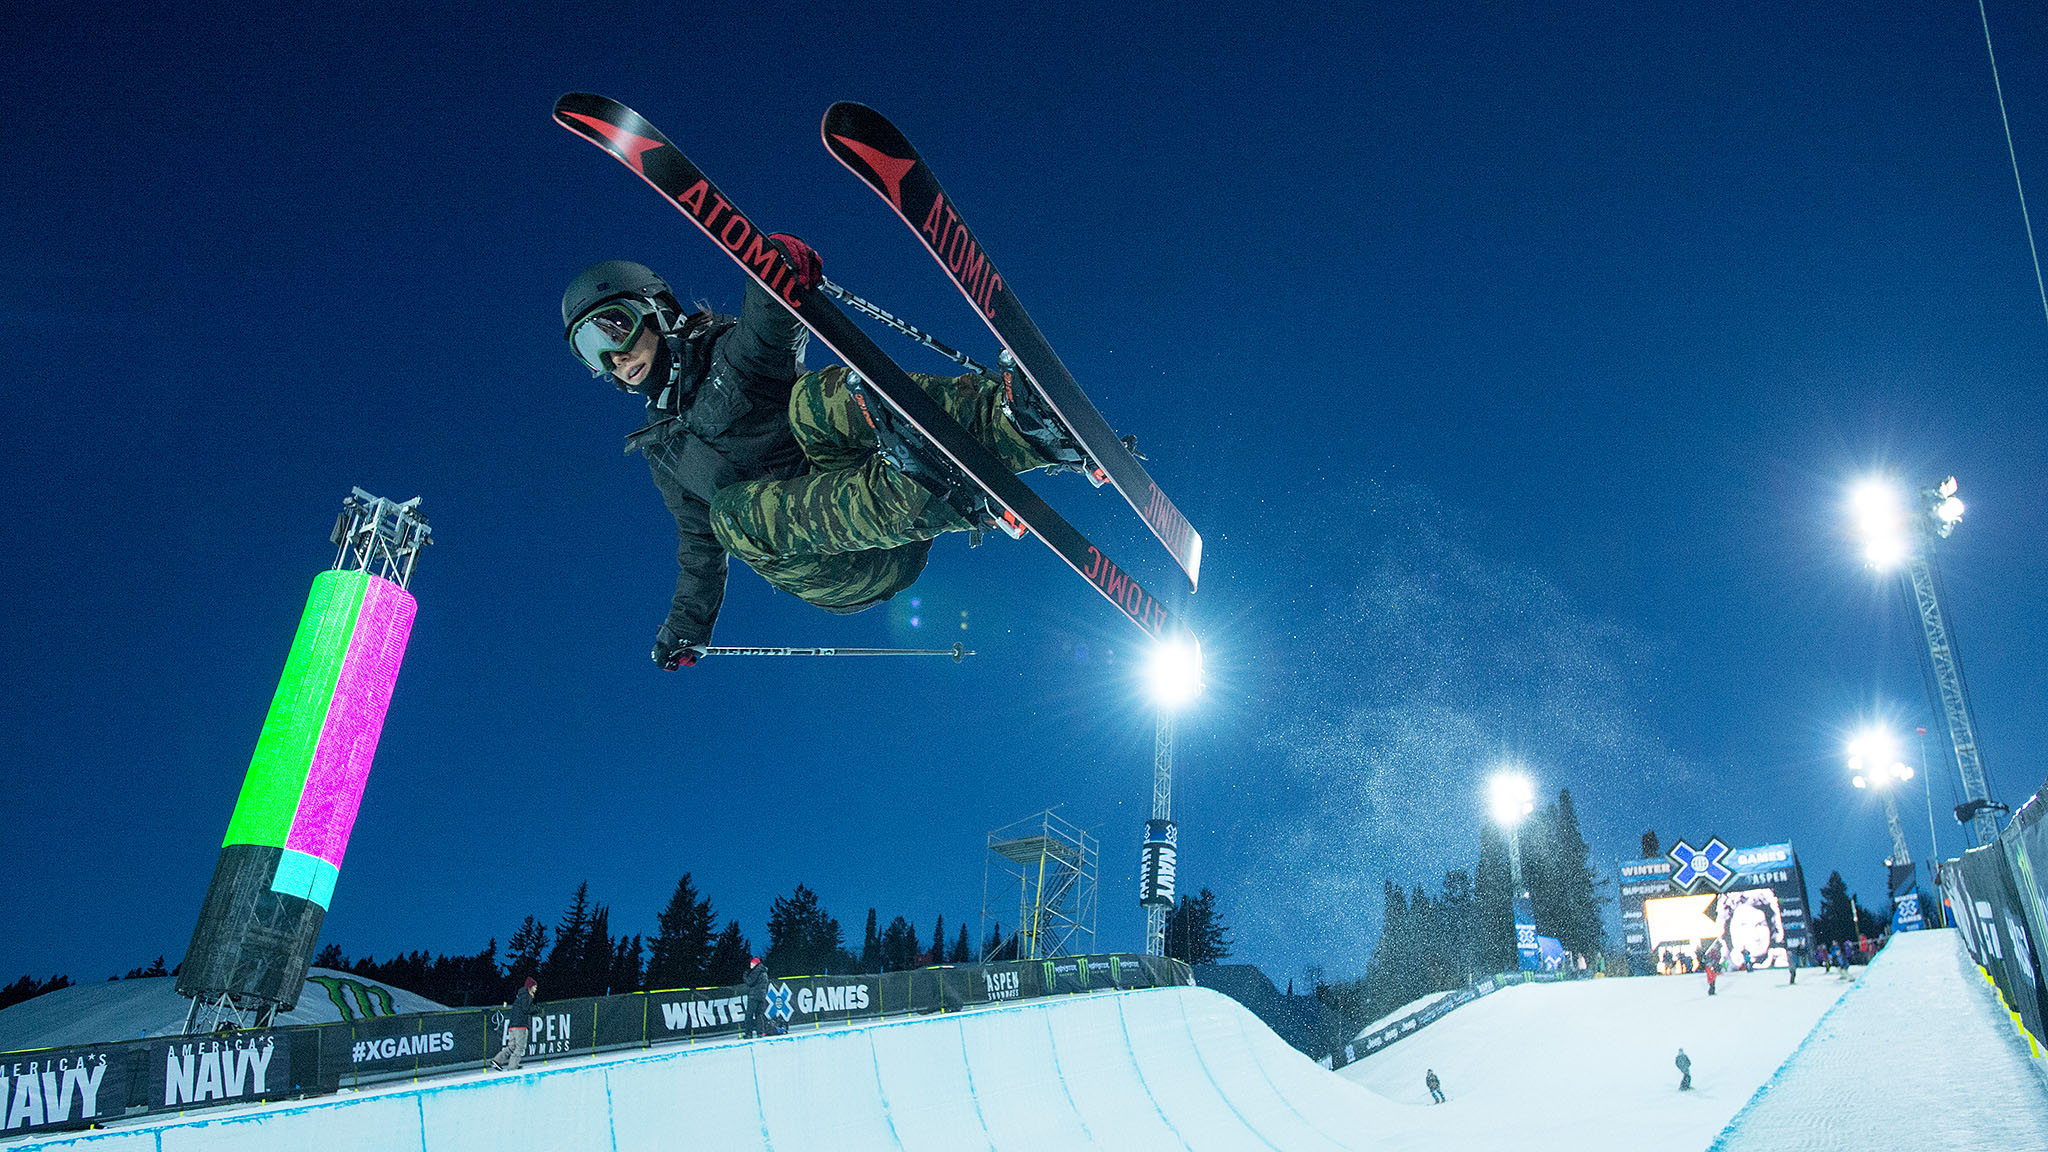 Angeli VanLaanen returned to X Games Aspen in January after three years off from competition due to Lyme.